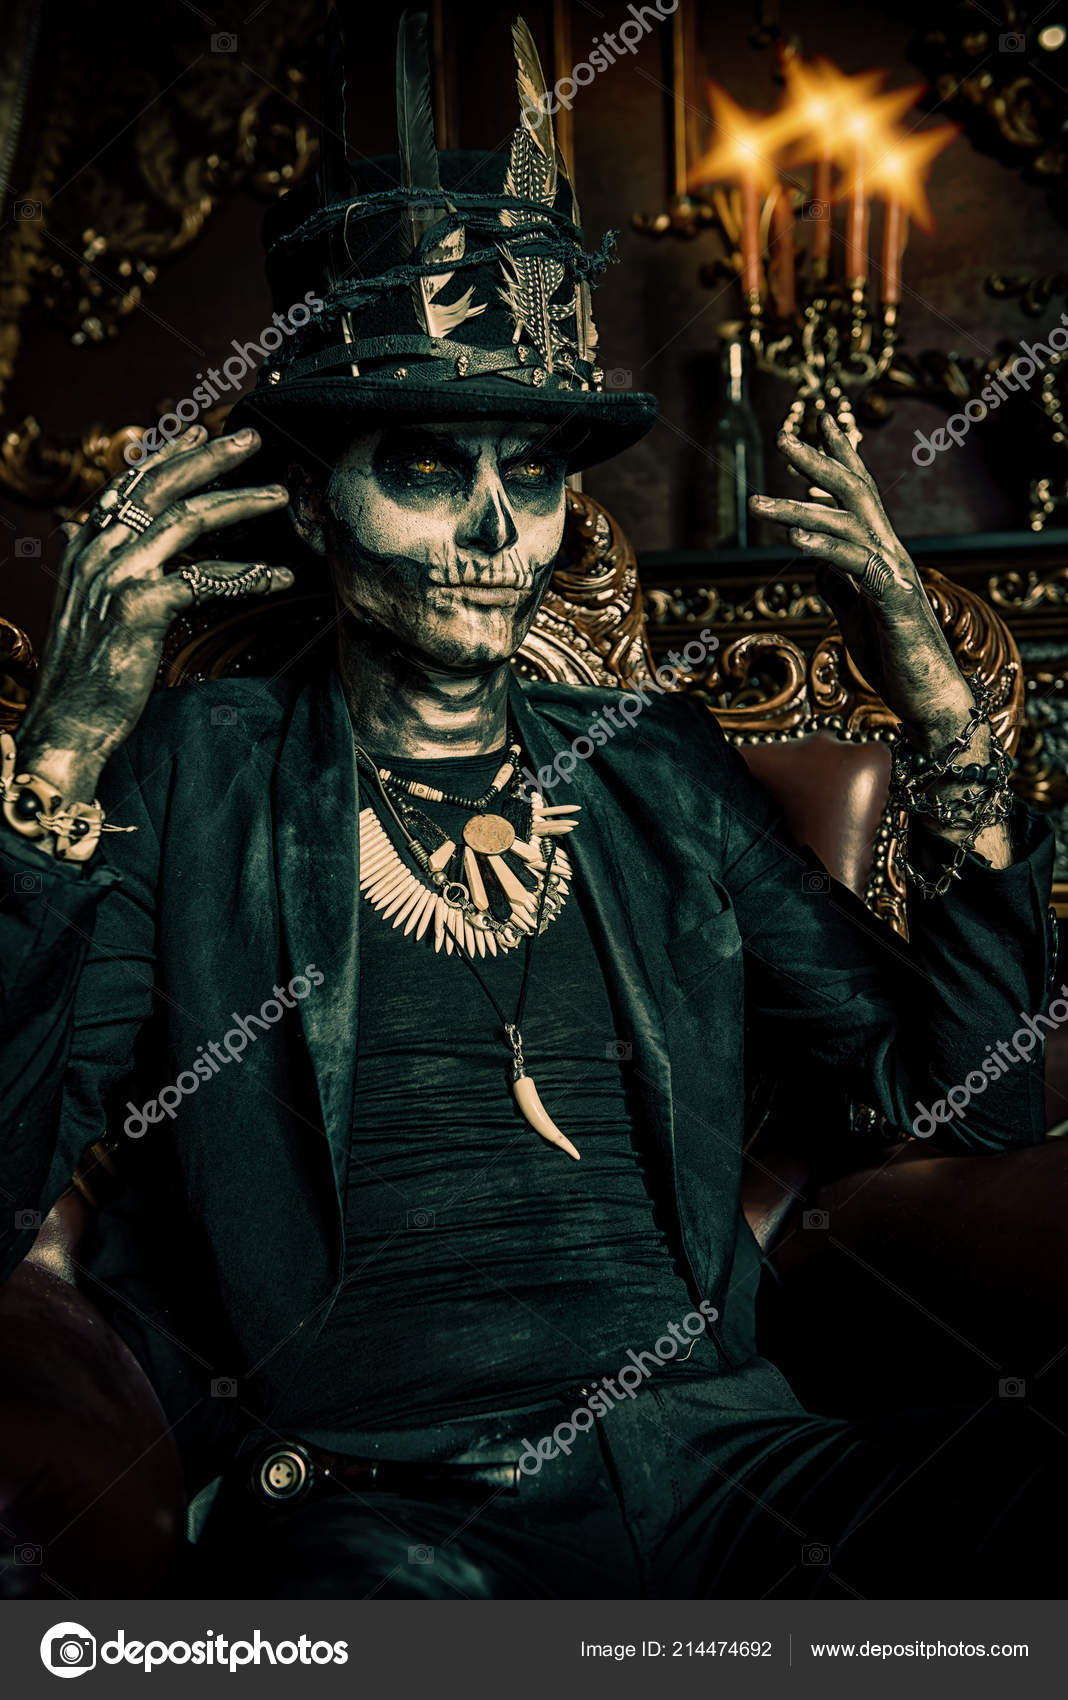 Halloween Maan.Pics Halloween Top Hat Halloween Man Skull Makeup Dressed